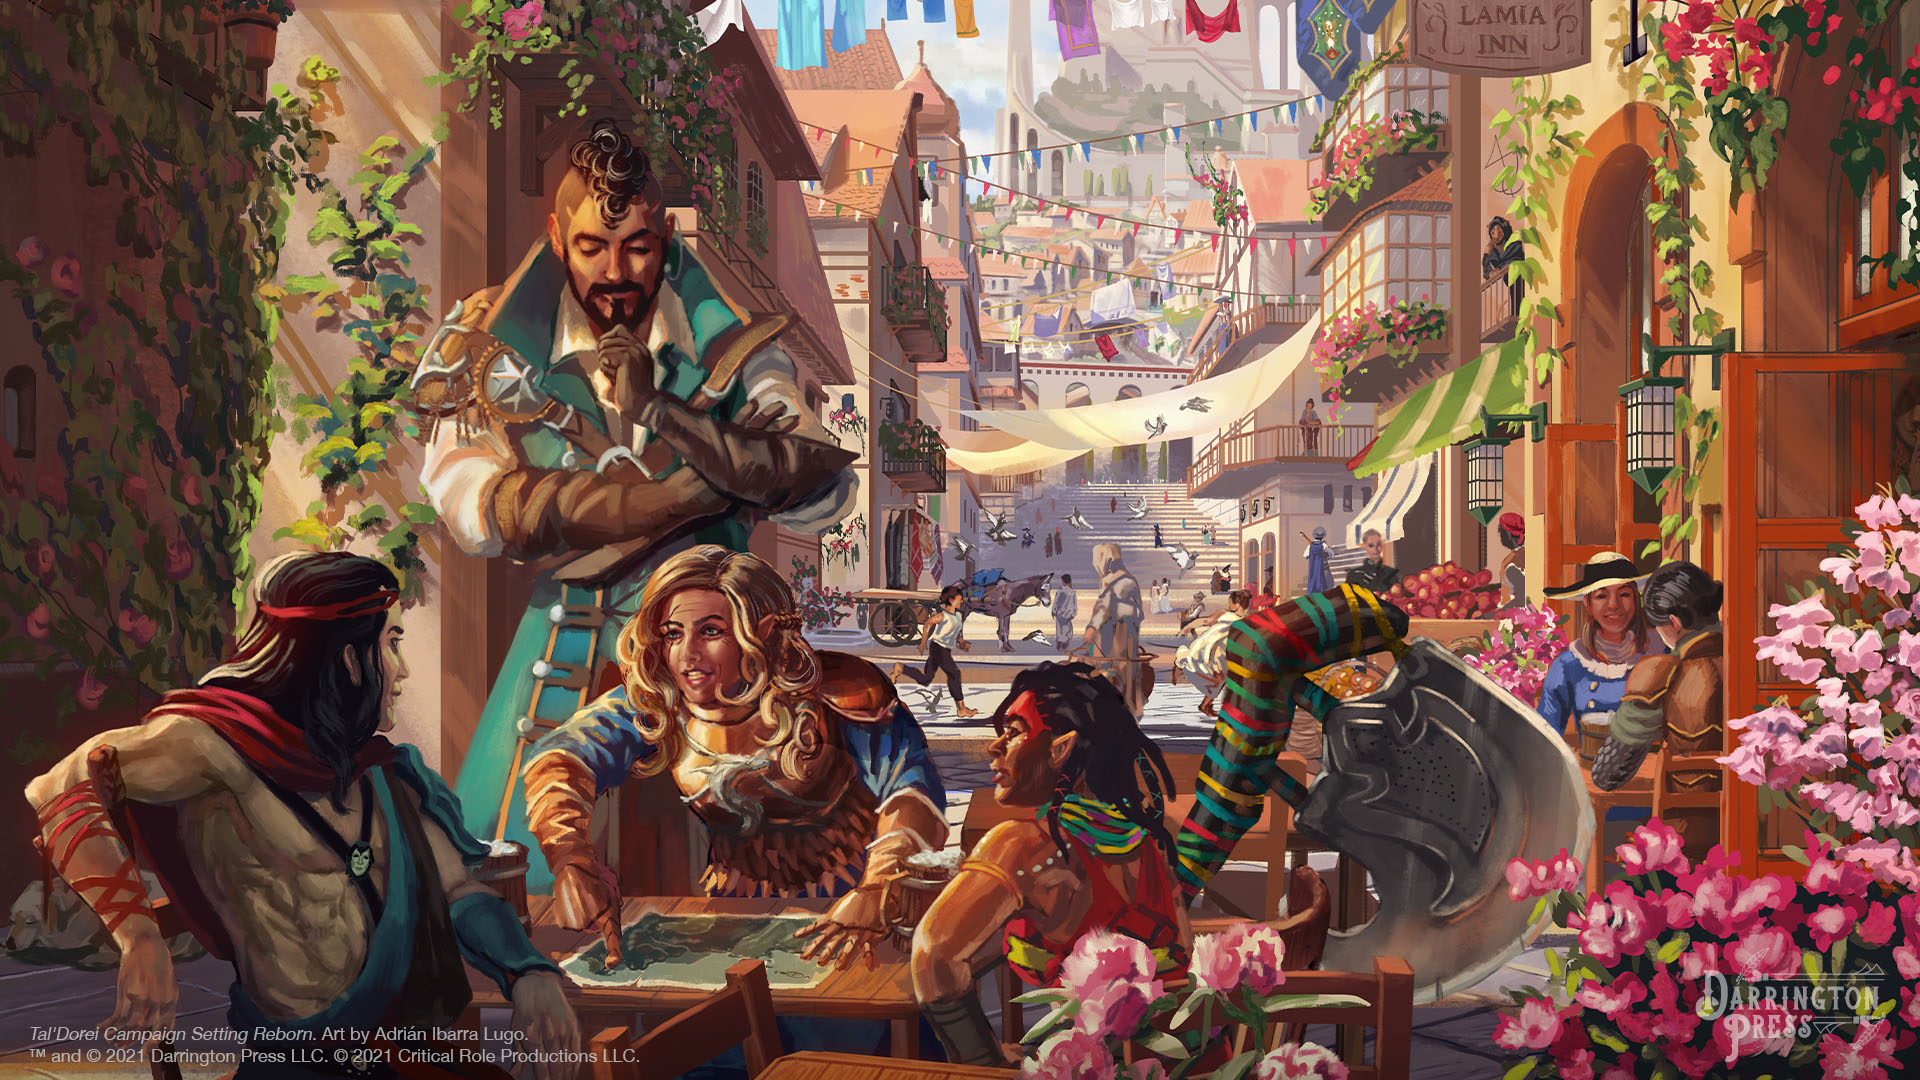 """A street view of the busy city of Emon, filled with flowers, lines of clothing and cloth canopies connecting the buildings on either side. In the foreground there are several adventures conversing at a table with a map outside of the """"Laughing Lamia Inn."""" In the background there is an airship in the sky with white sails and a tall castle overlooking the city. Art by Adrián Ibarra Lugo."""